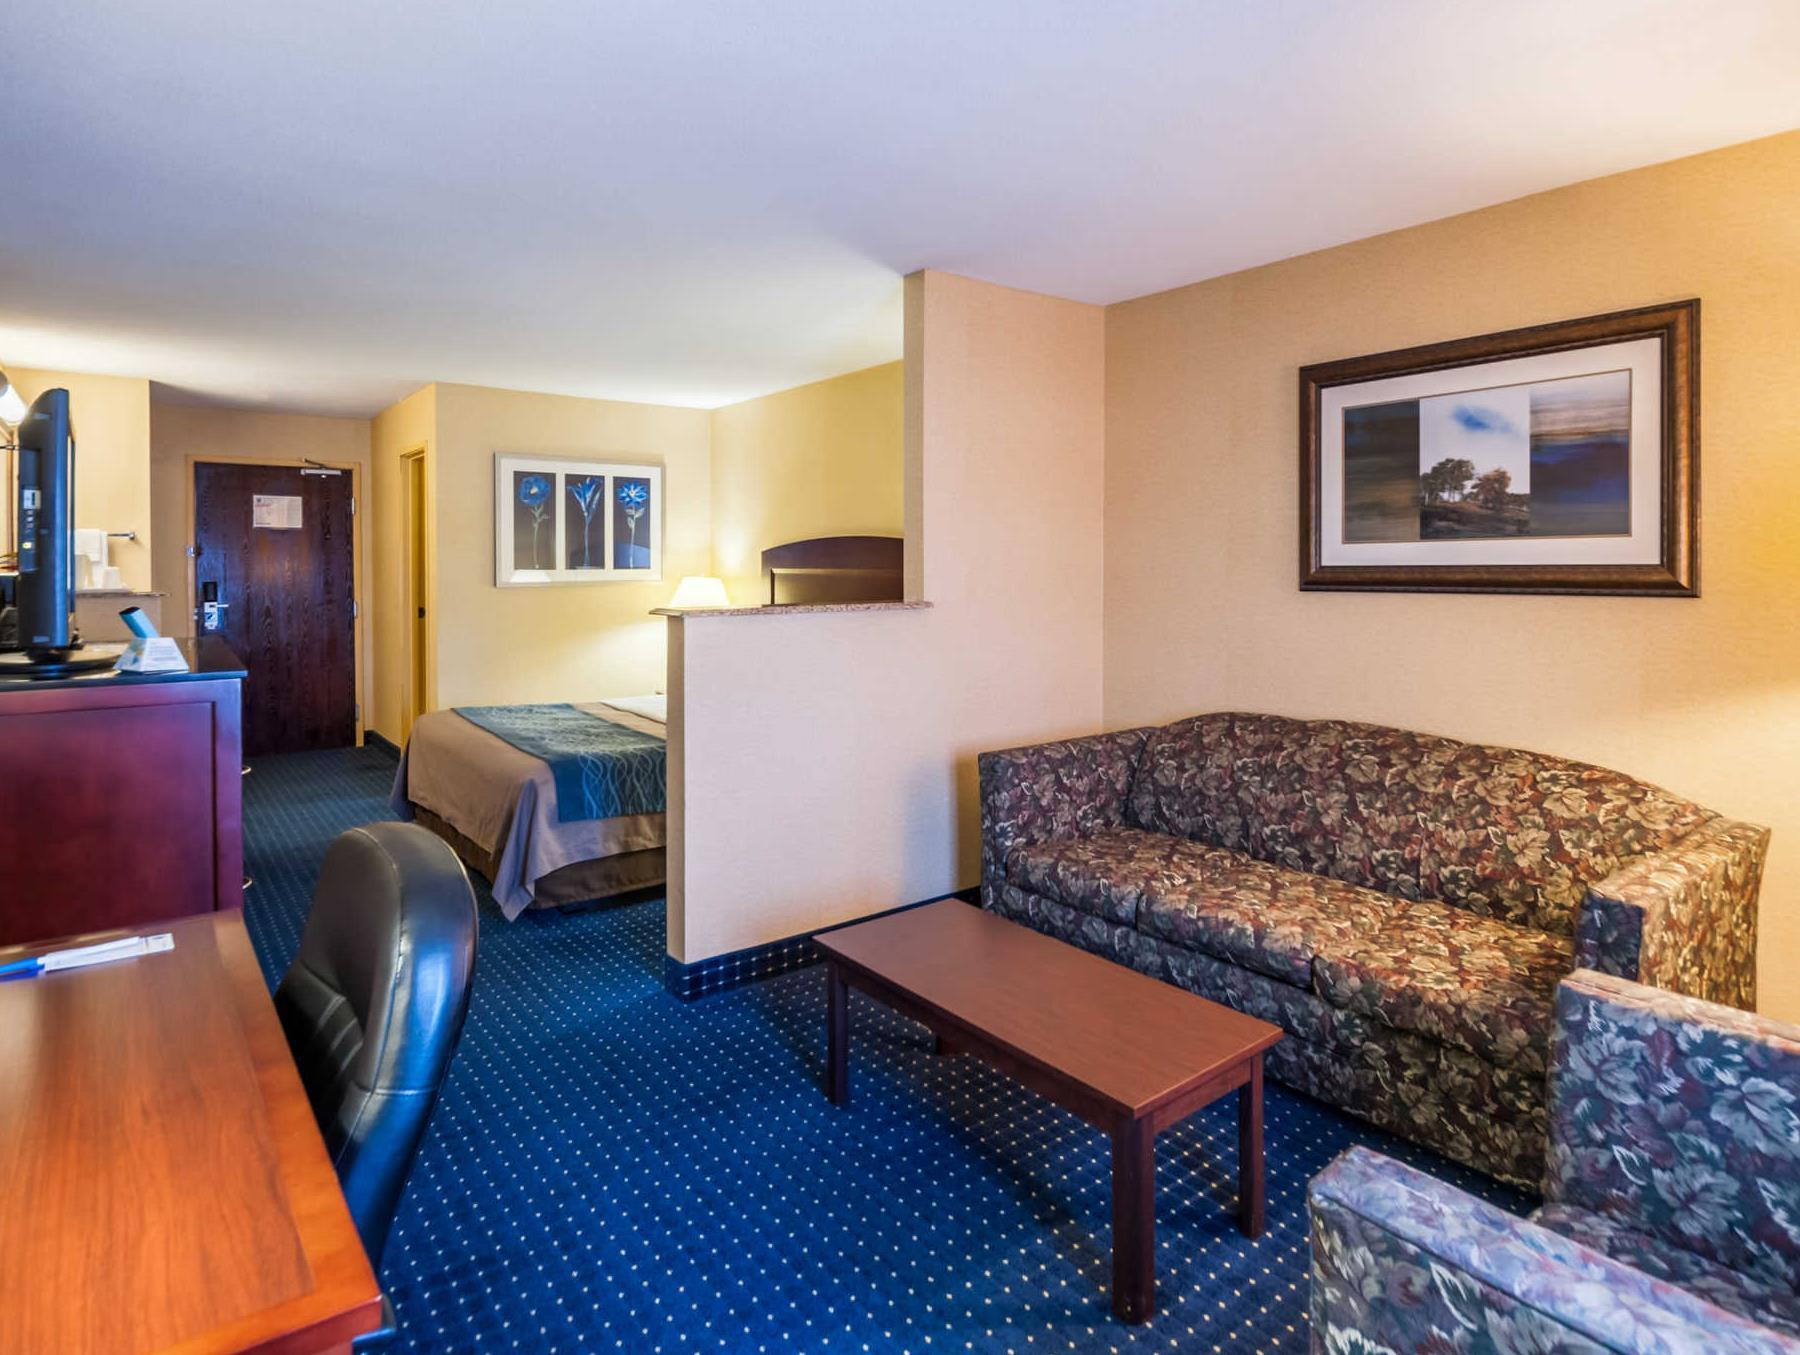 Comfort Inn and Suites North East, Cecil